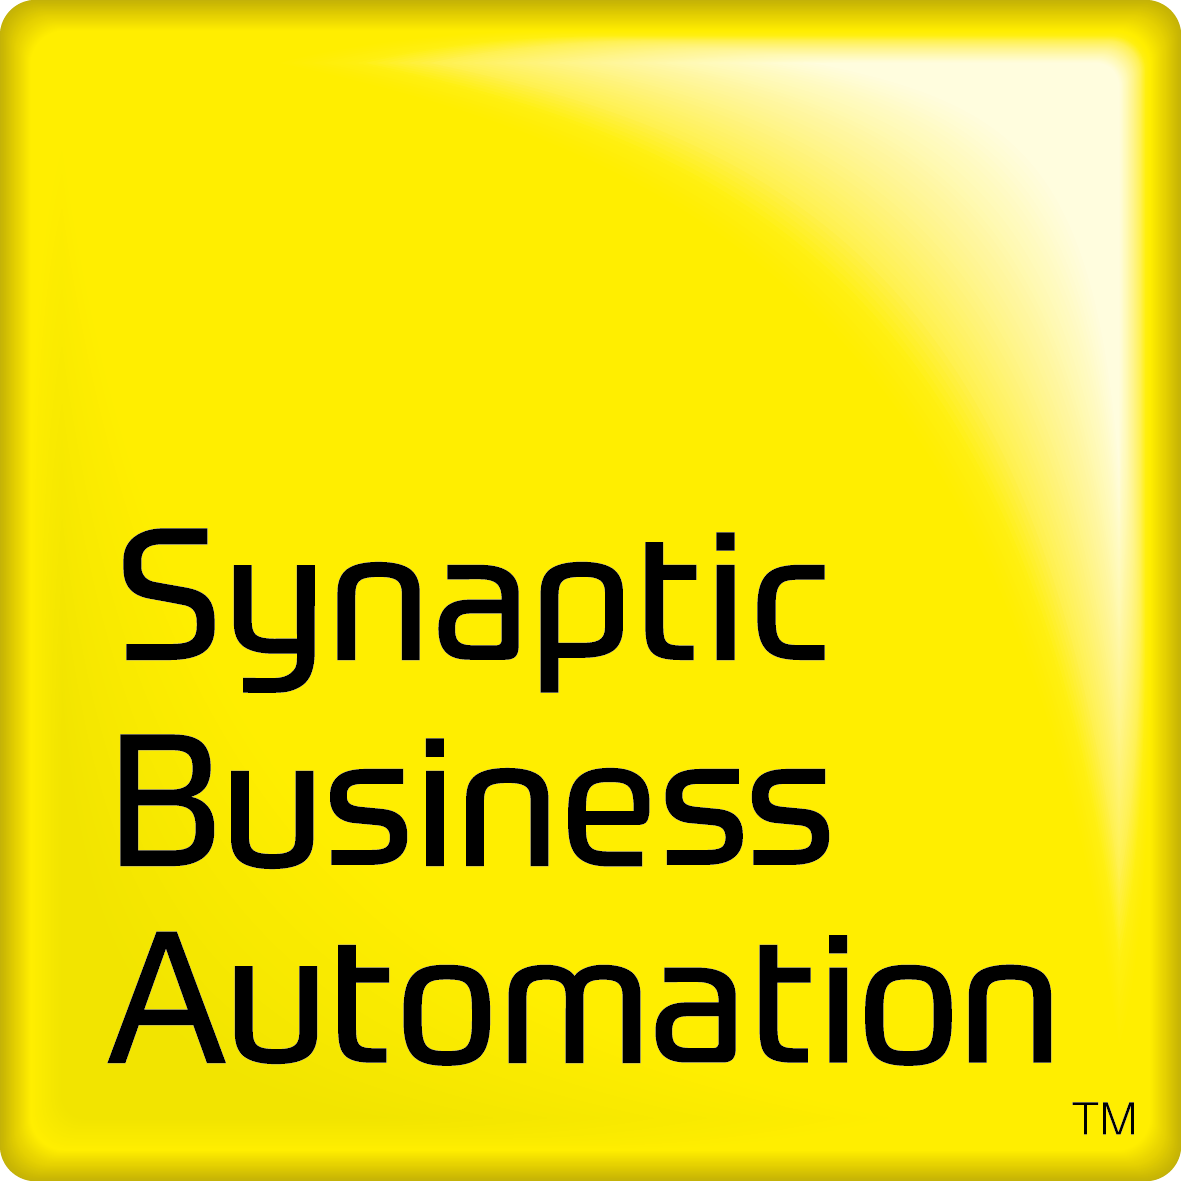 Synaptic Business Automation カラーロゴ